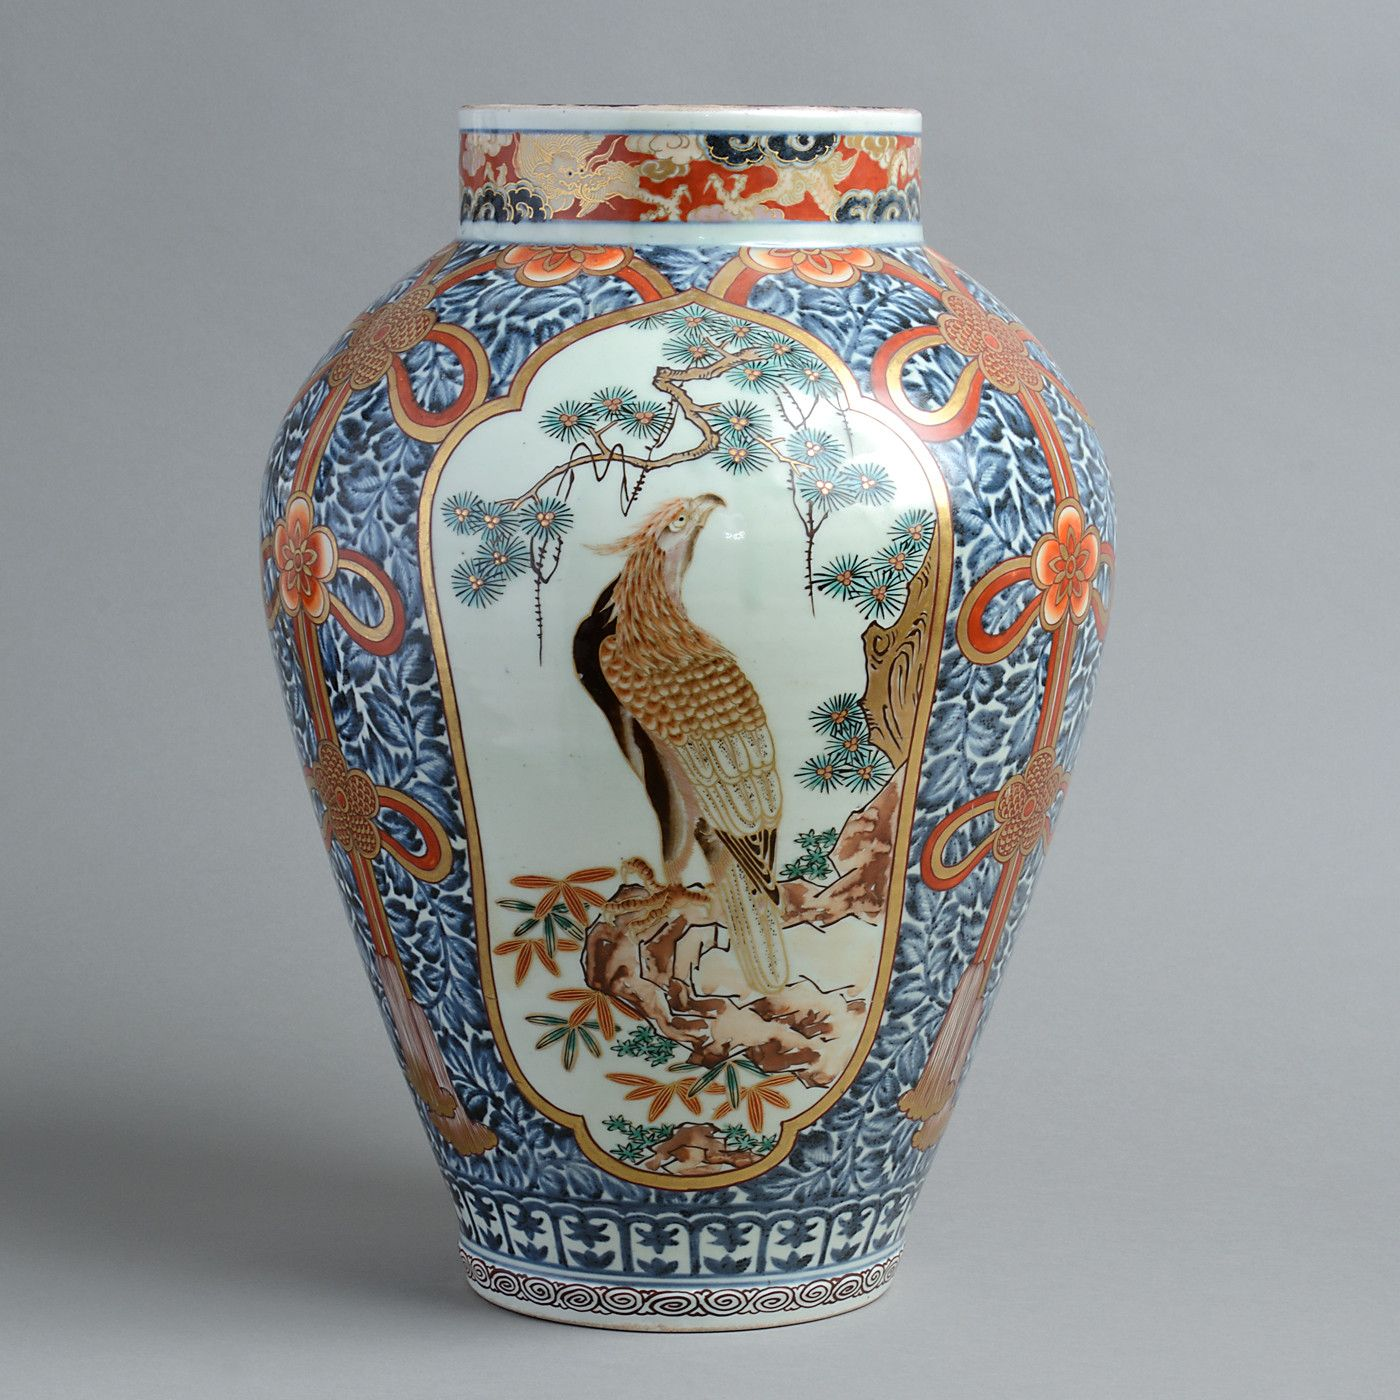 A fine 17th century imari vase timothy langston antiek pottery reviewsmspy